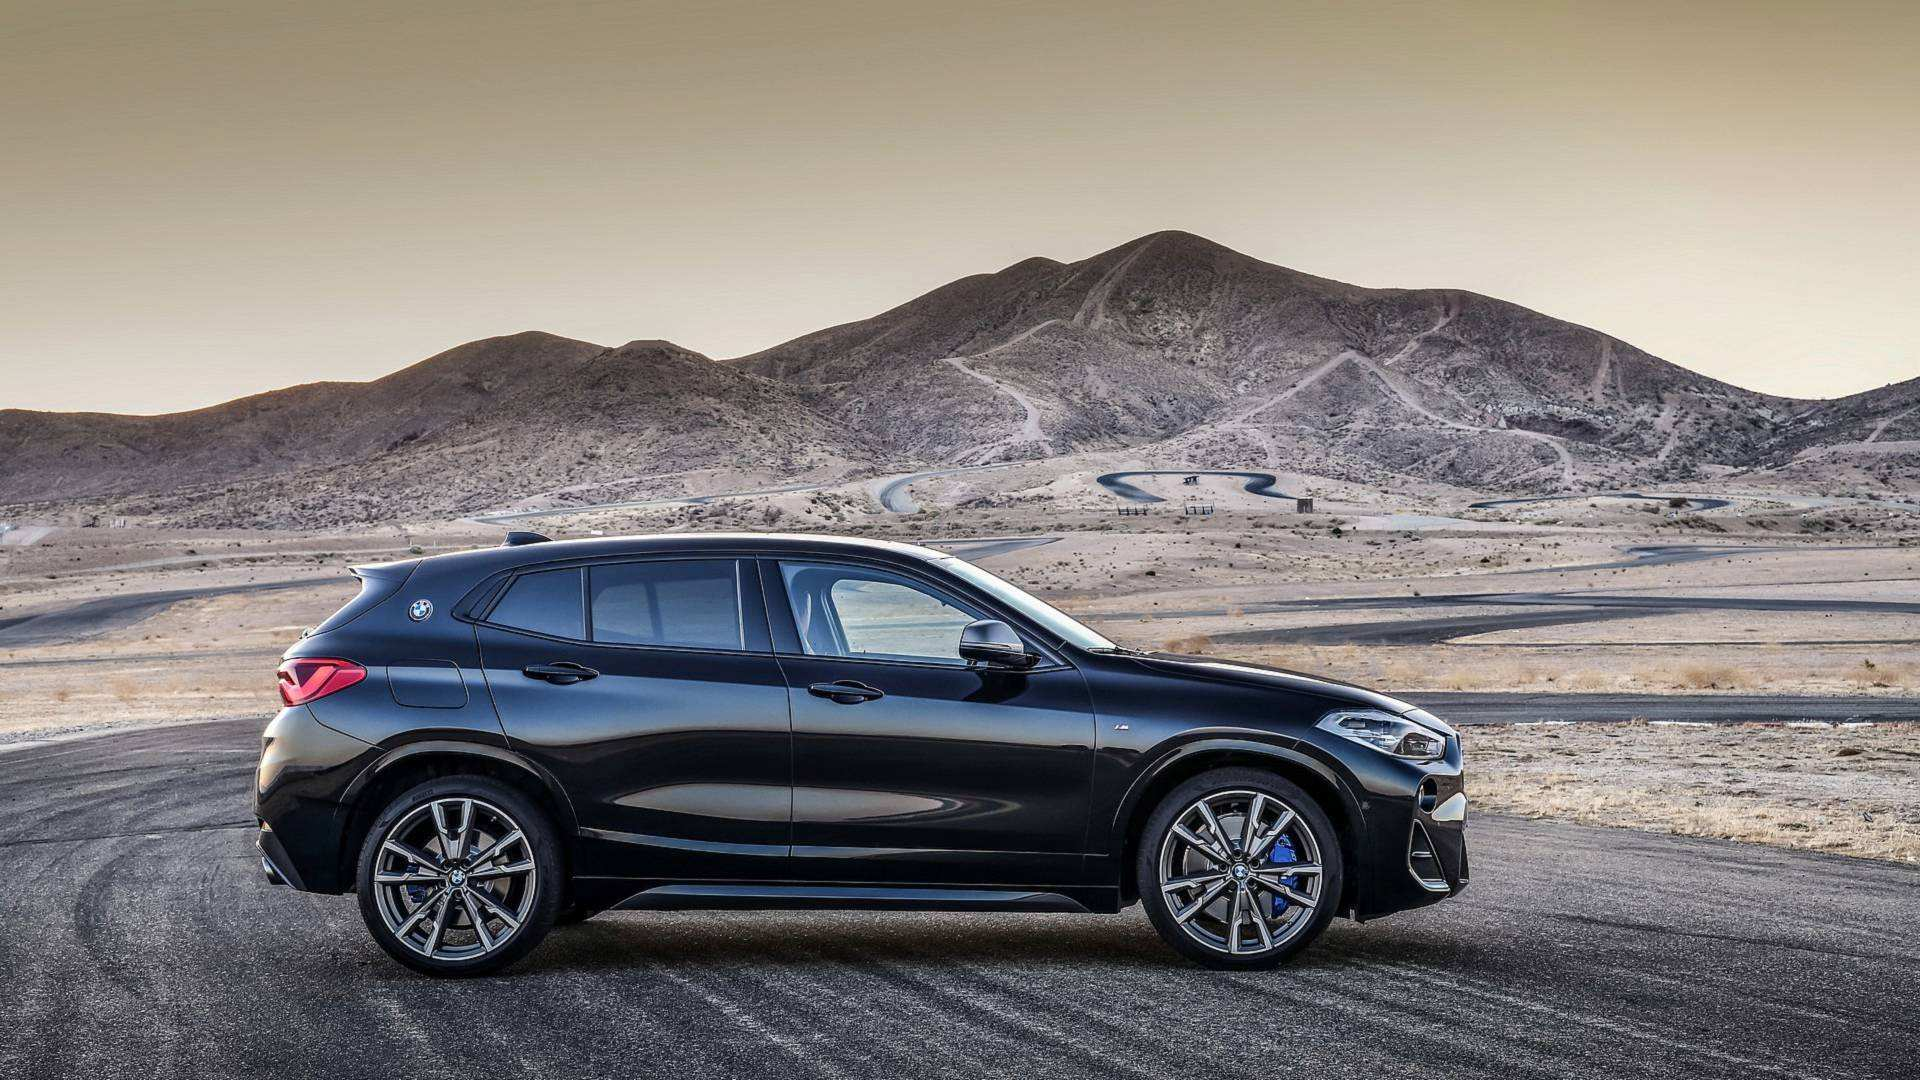 79 Best Review 2019 Bmw X2 Specs and Review by 2019 Bmw X2